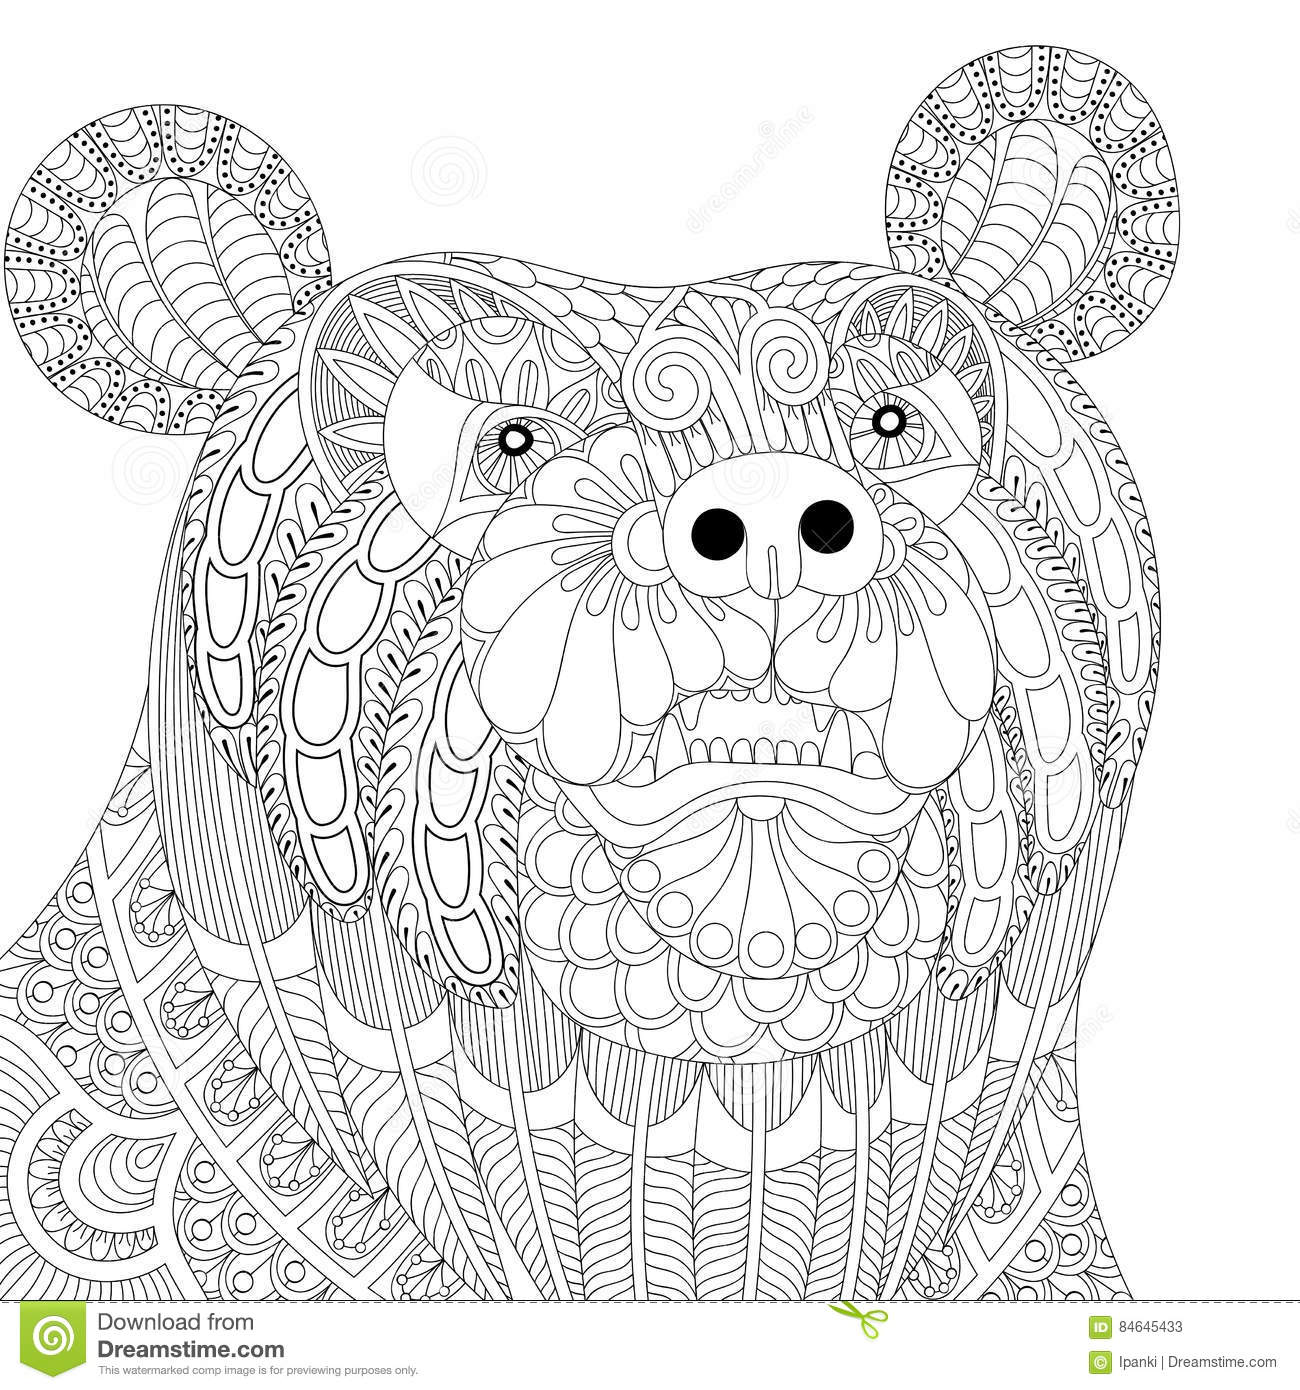 Printable Coloring Pages: Coloring pages for child therapy | Best ... | 1390x1300